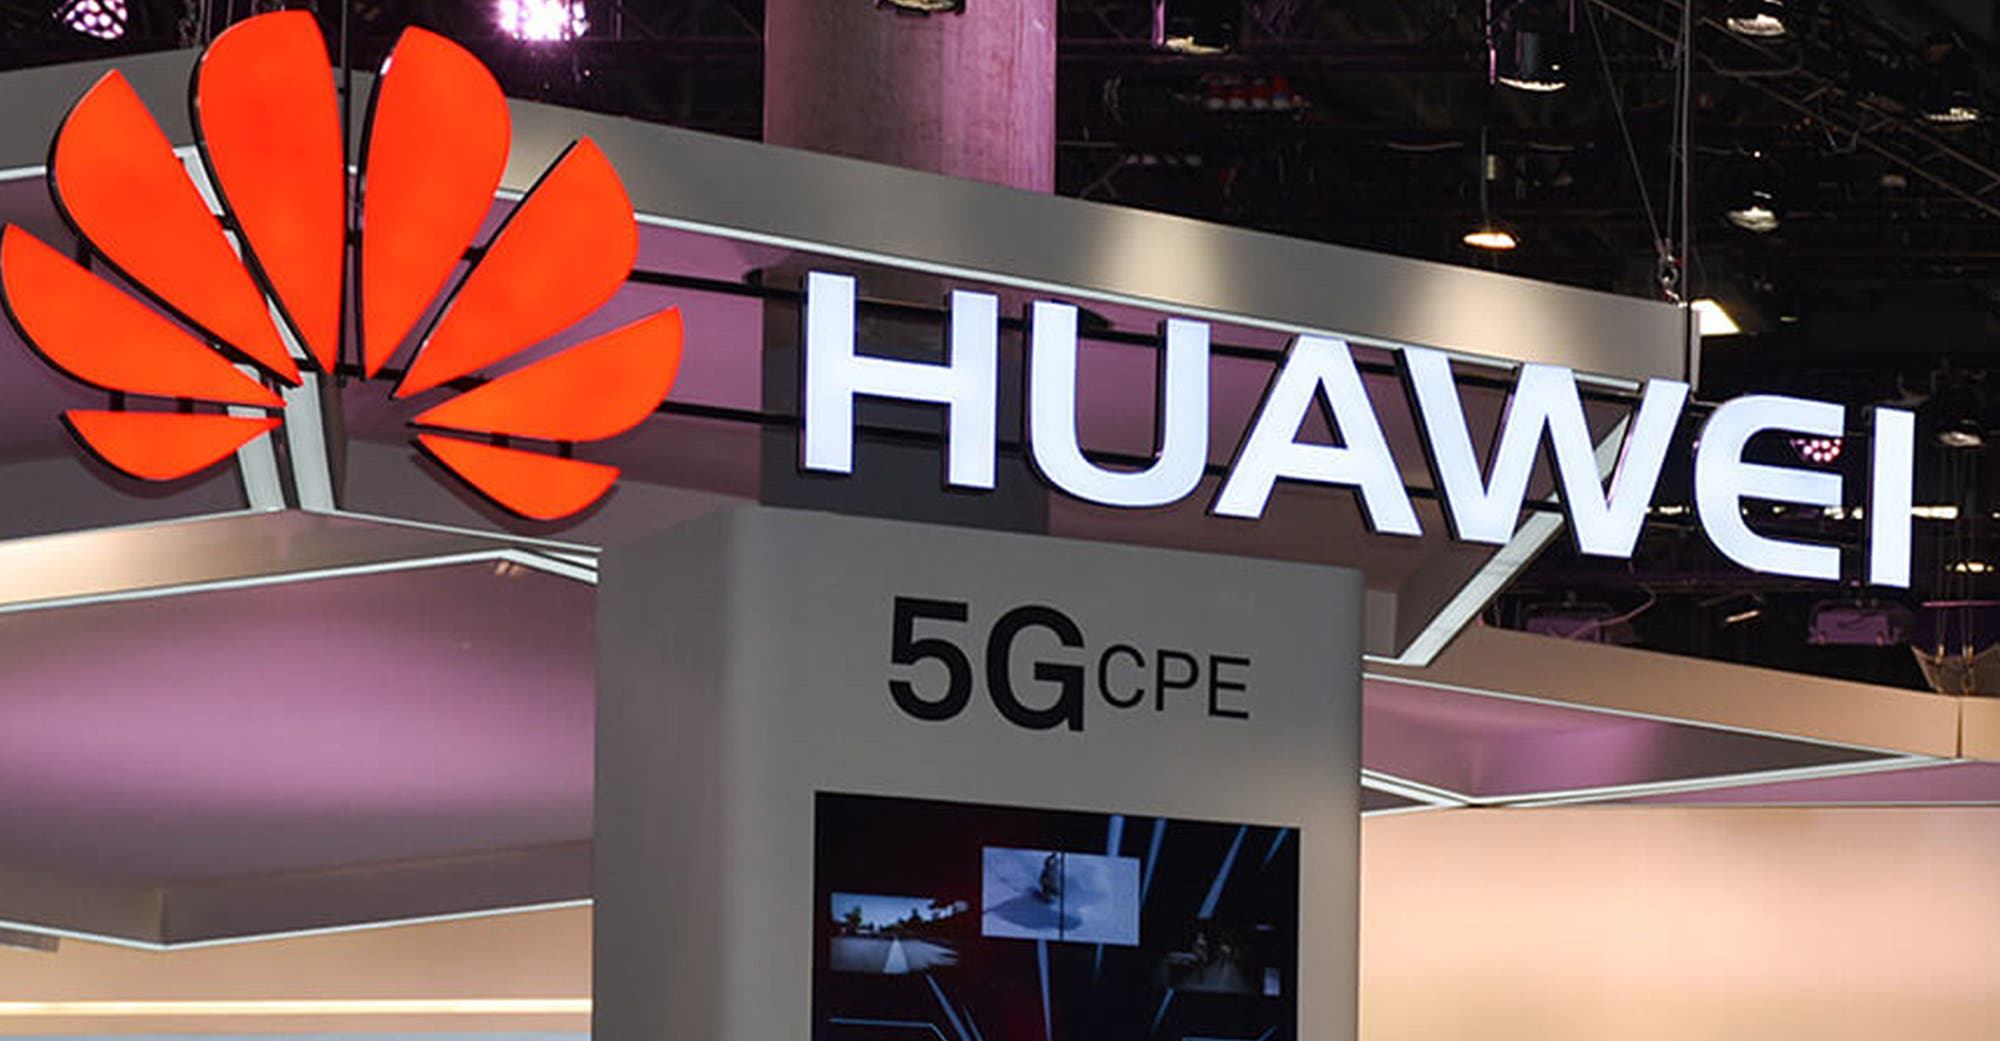 Huawei 5G is China's Leading Technology, BBC China Reports